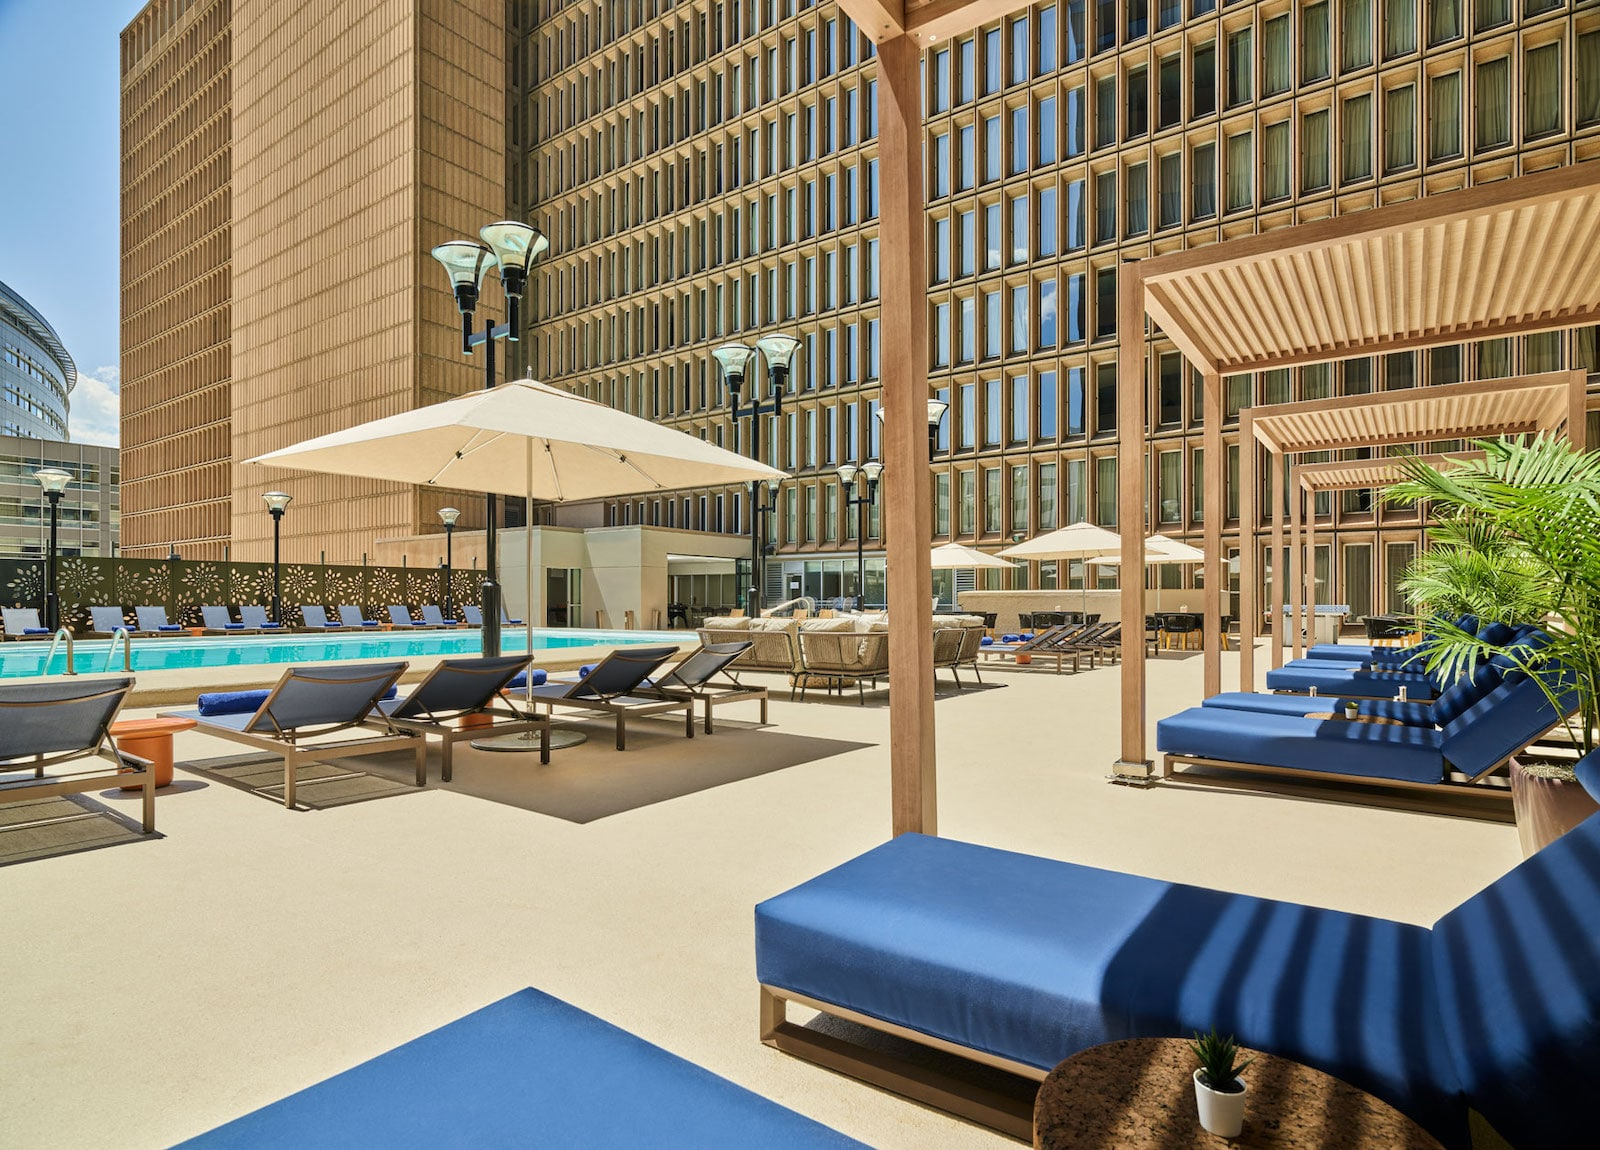 Image of the pool at the Sheraton Downtown Denver Hotel in Colorado